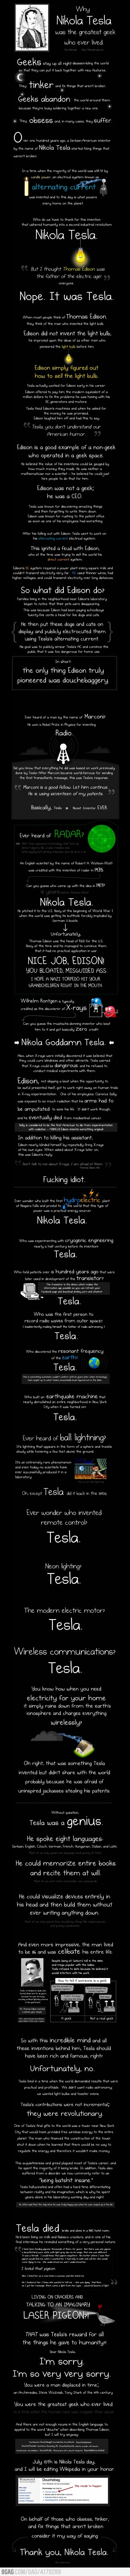 Thank you Nikola Tesla, for being batshit crazy and overall an incredible person.